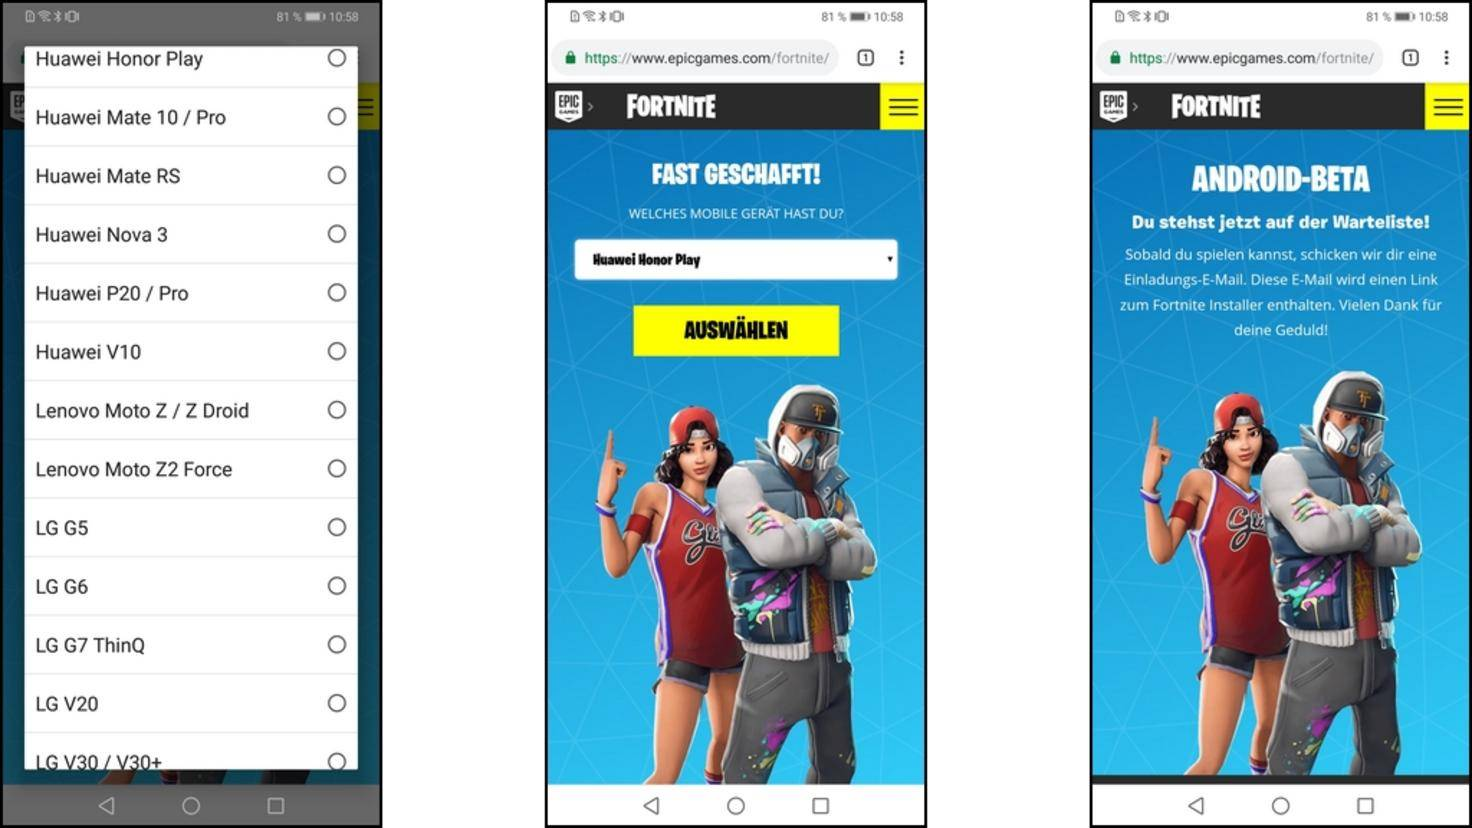 Fortnite-Android-Registrierung